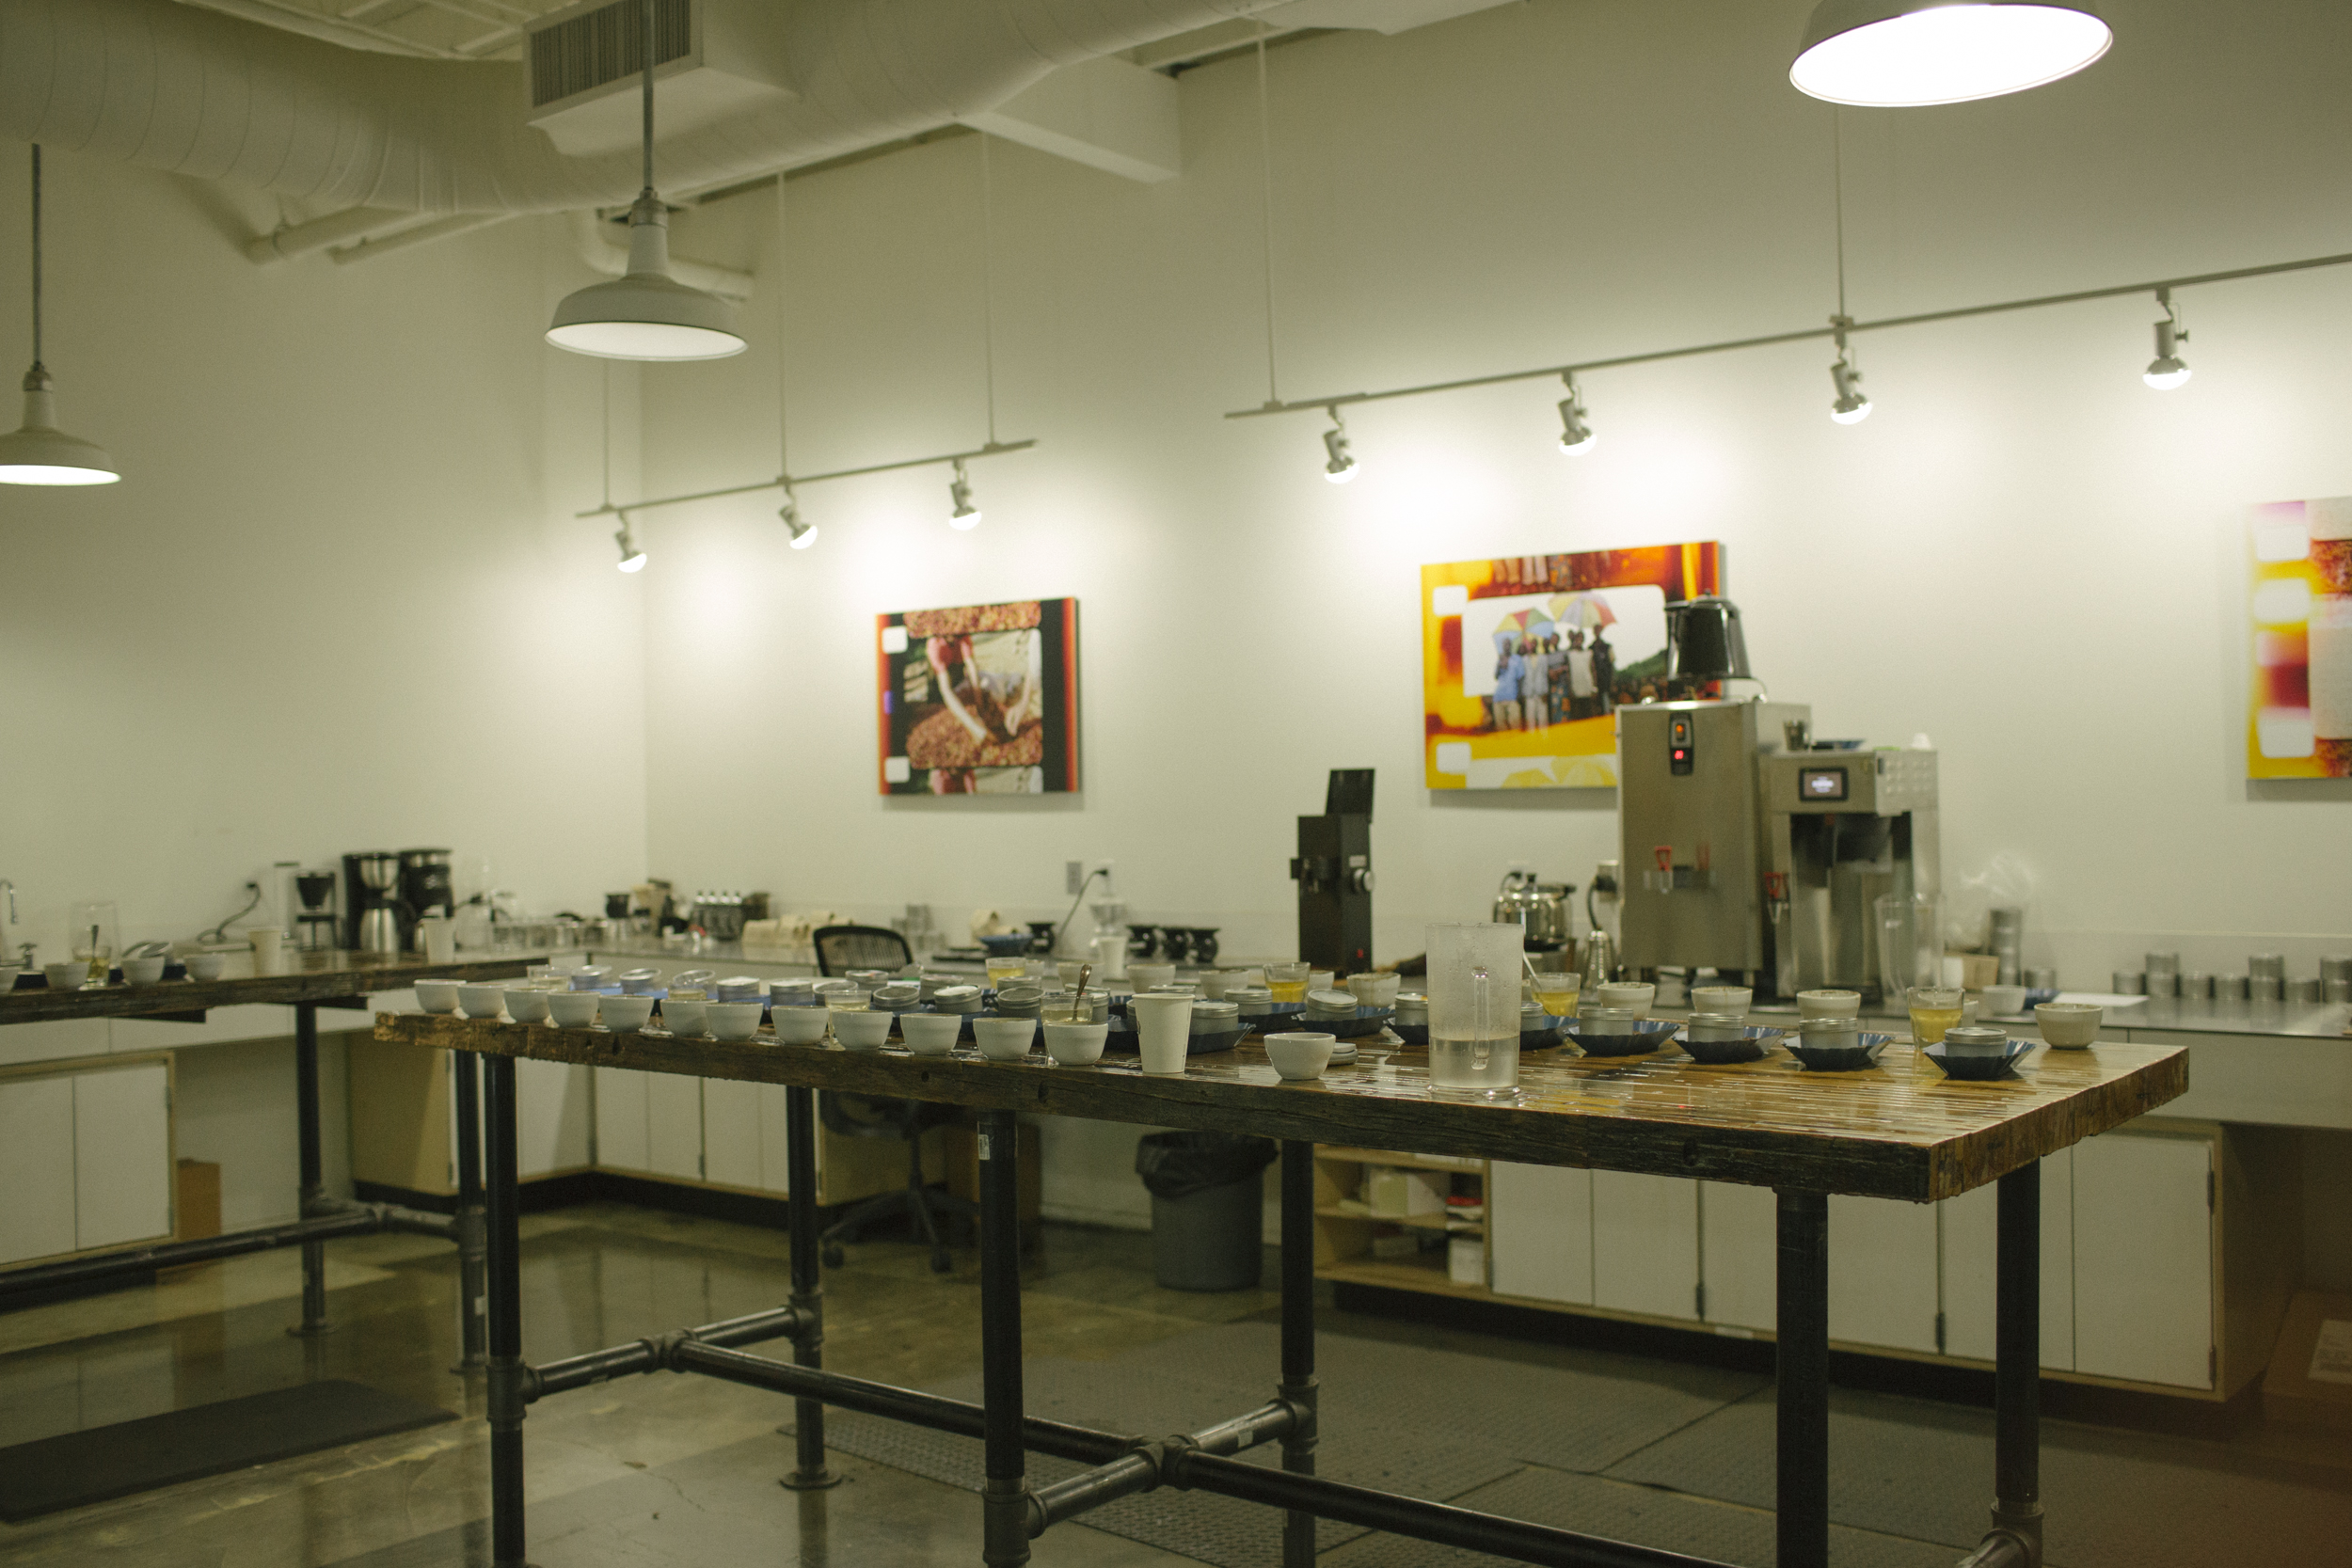 A room dedicated to cupping different coffee's. The person in there asked not to be photographed - Which I gladly obliged - but we had a great conversation about cameras/coffee. And I wanted to just chill in there all day cupping different coffees. What a job!